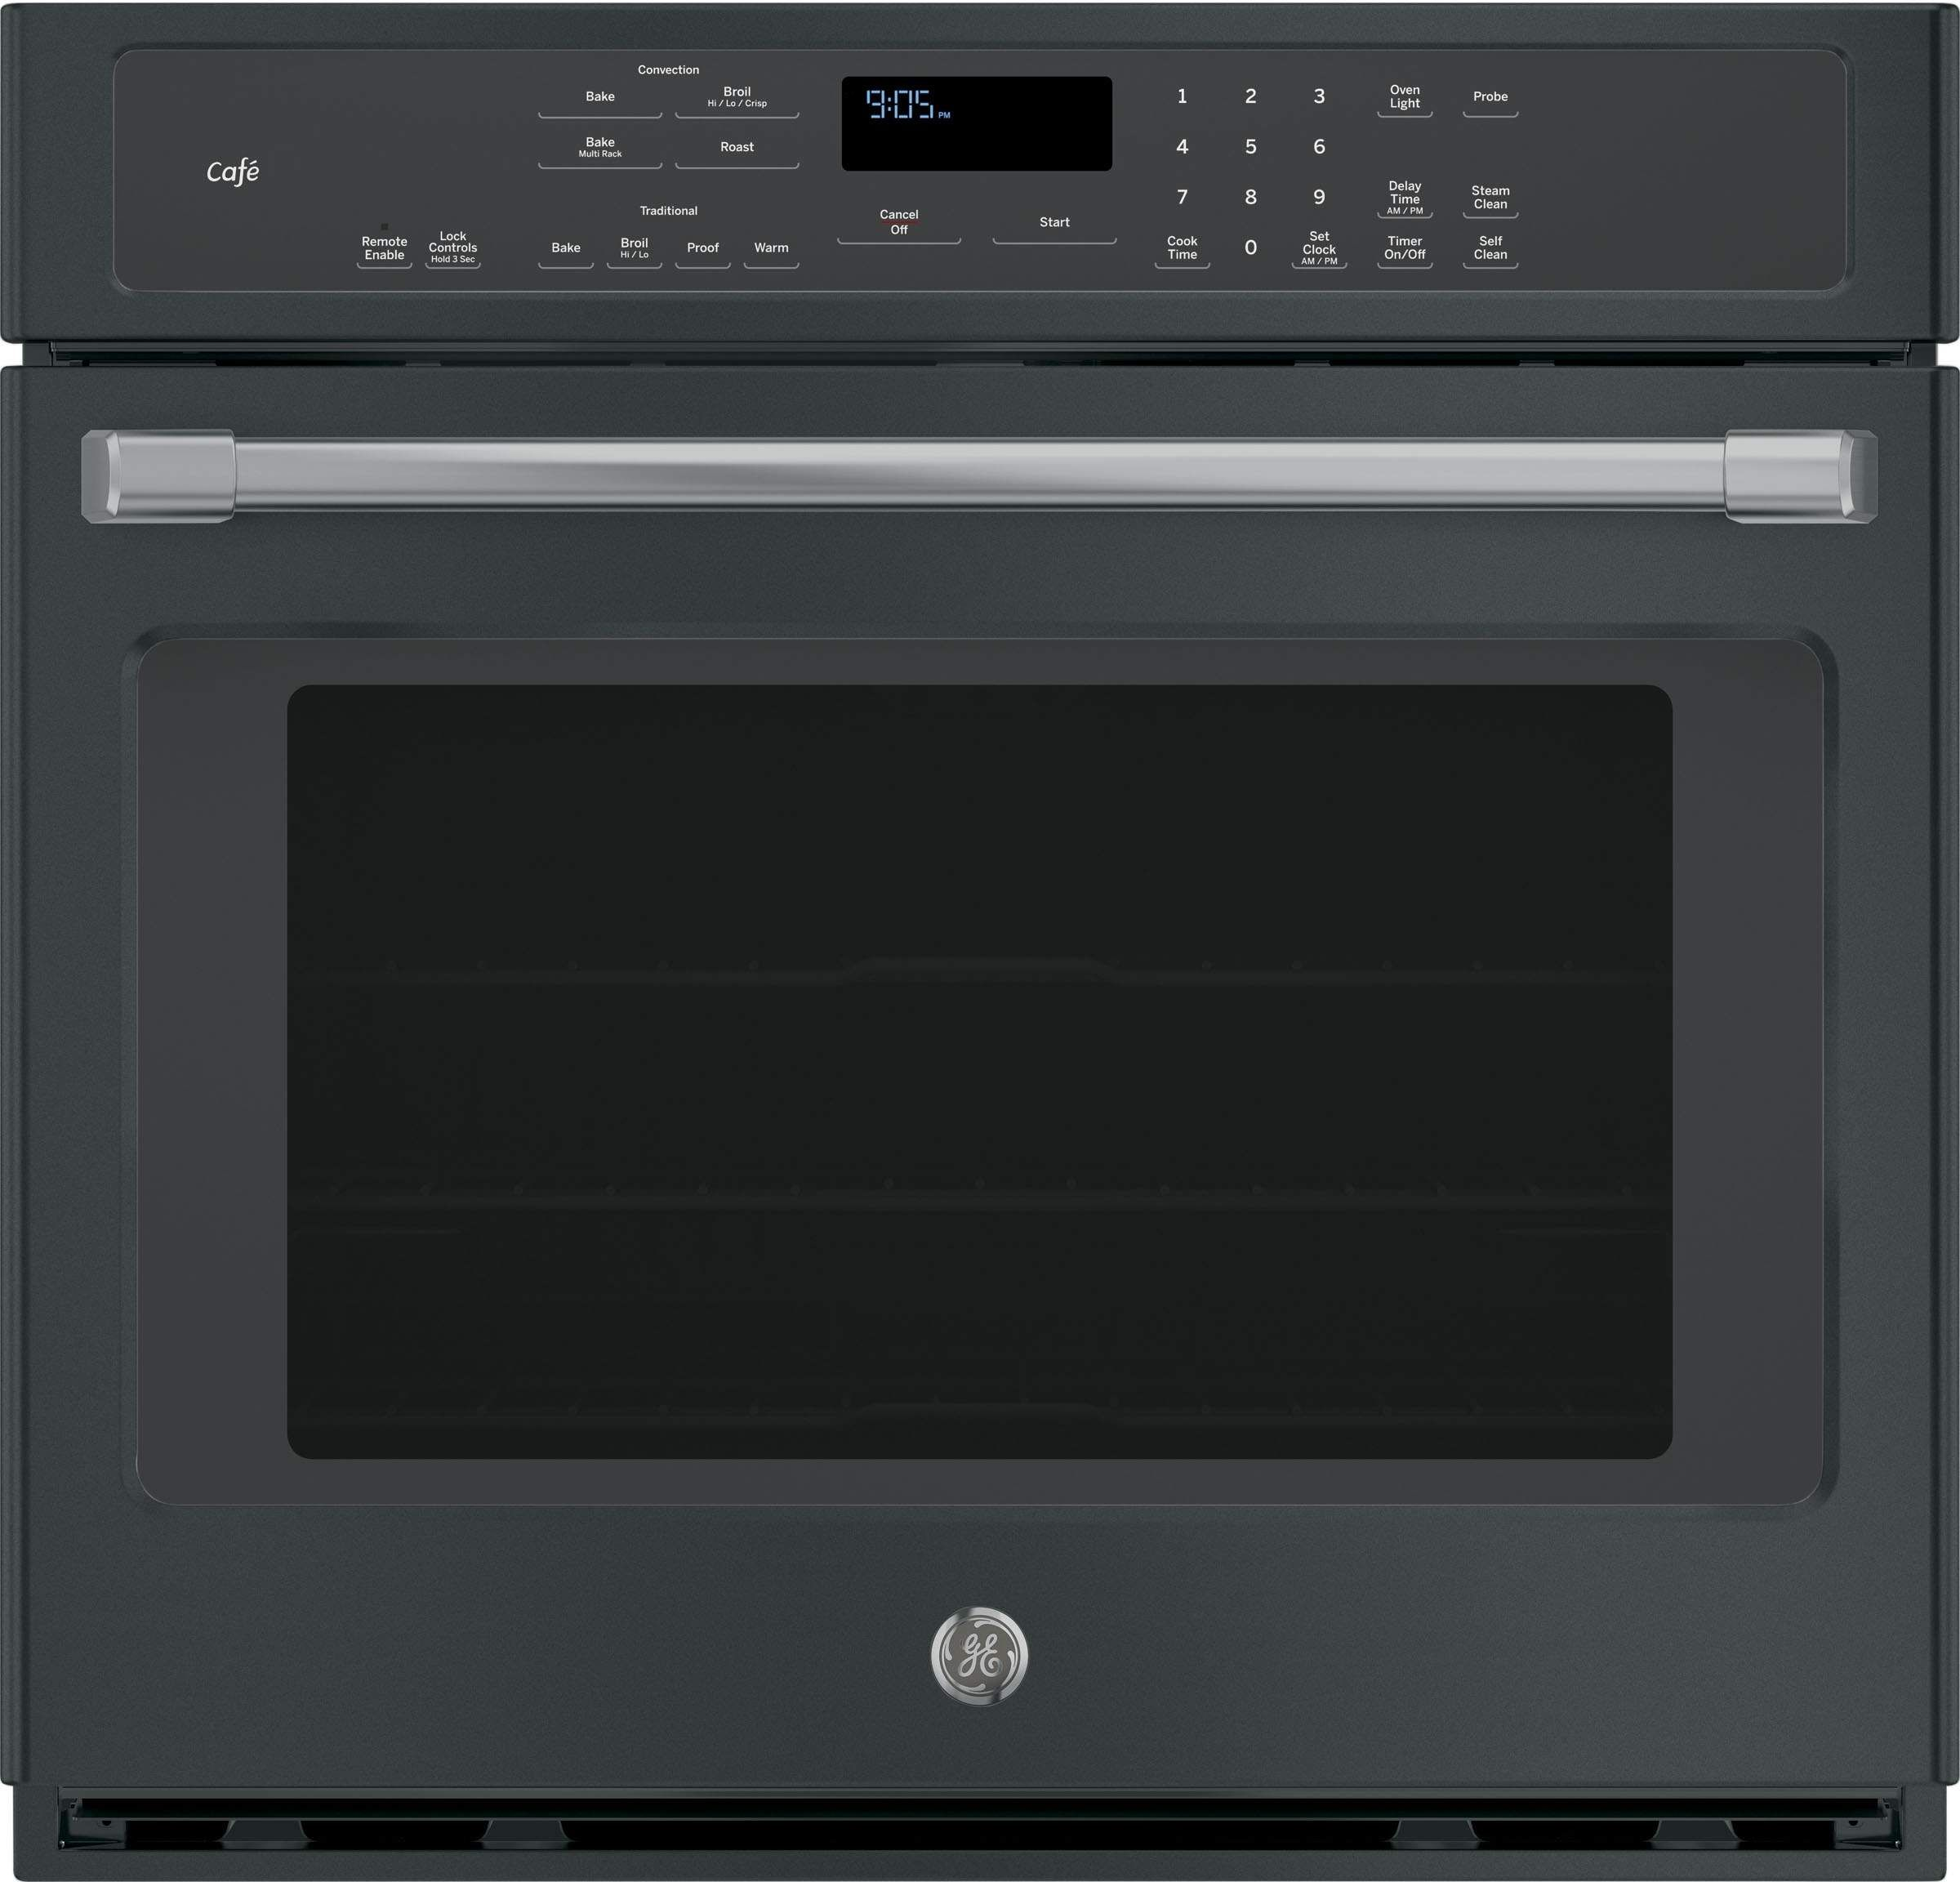 GE Cafe CT9050EKDS 30 Black Slate Series 5 cu ft Total Capacity